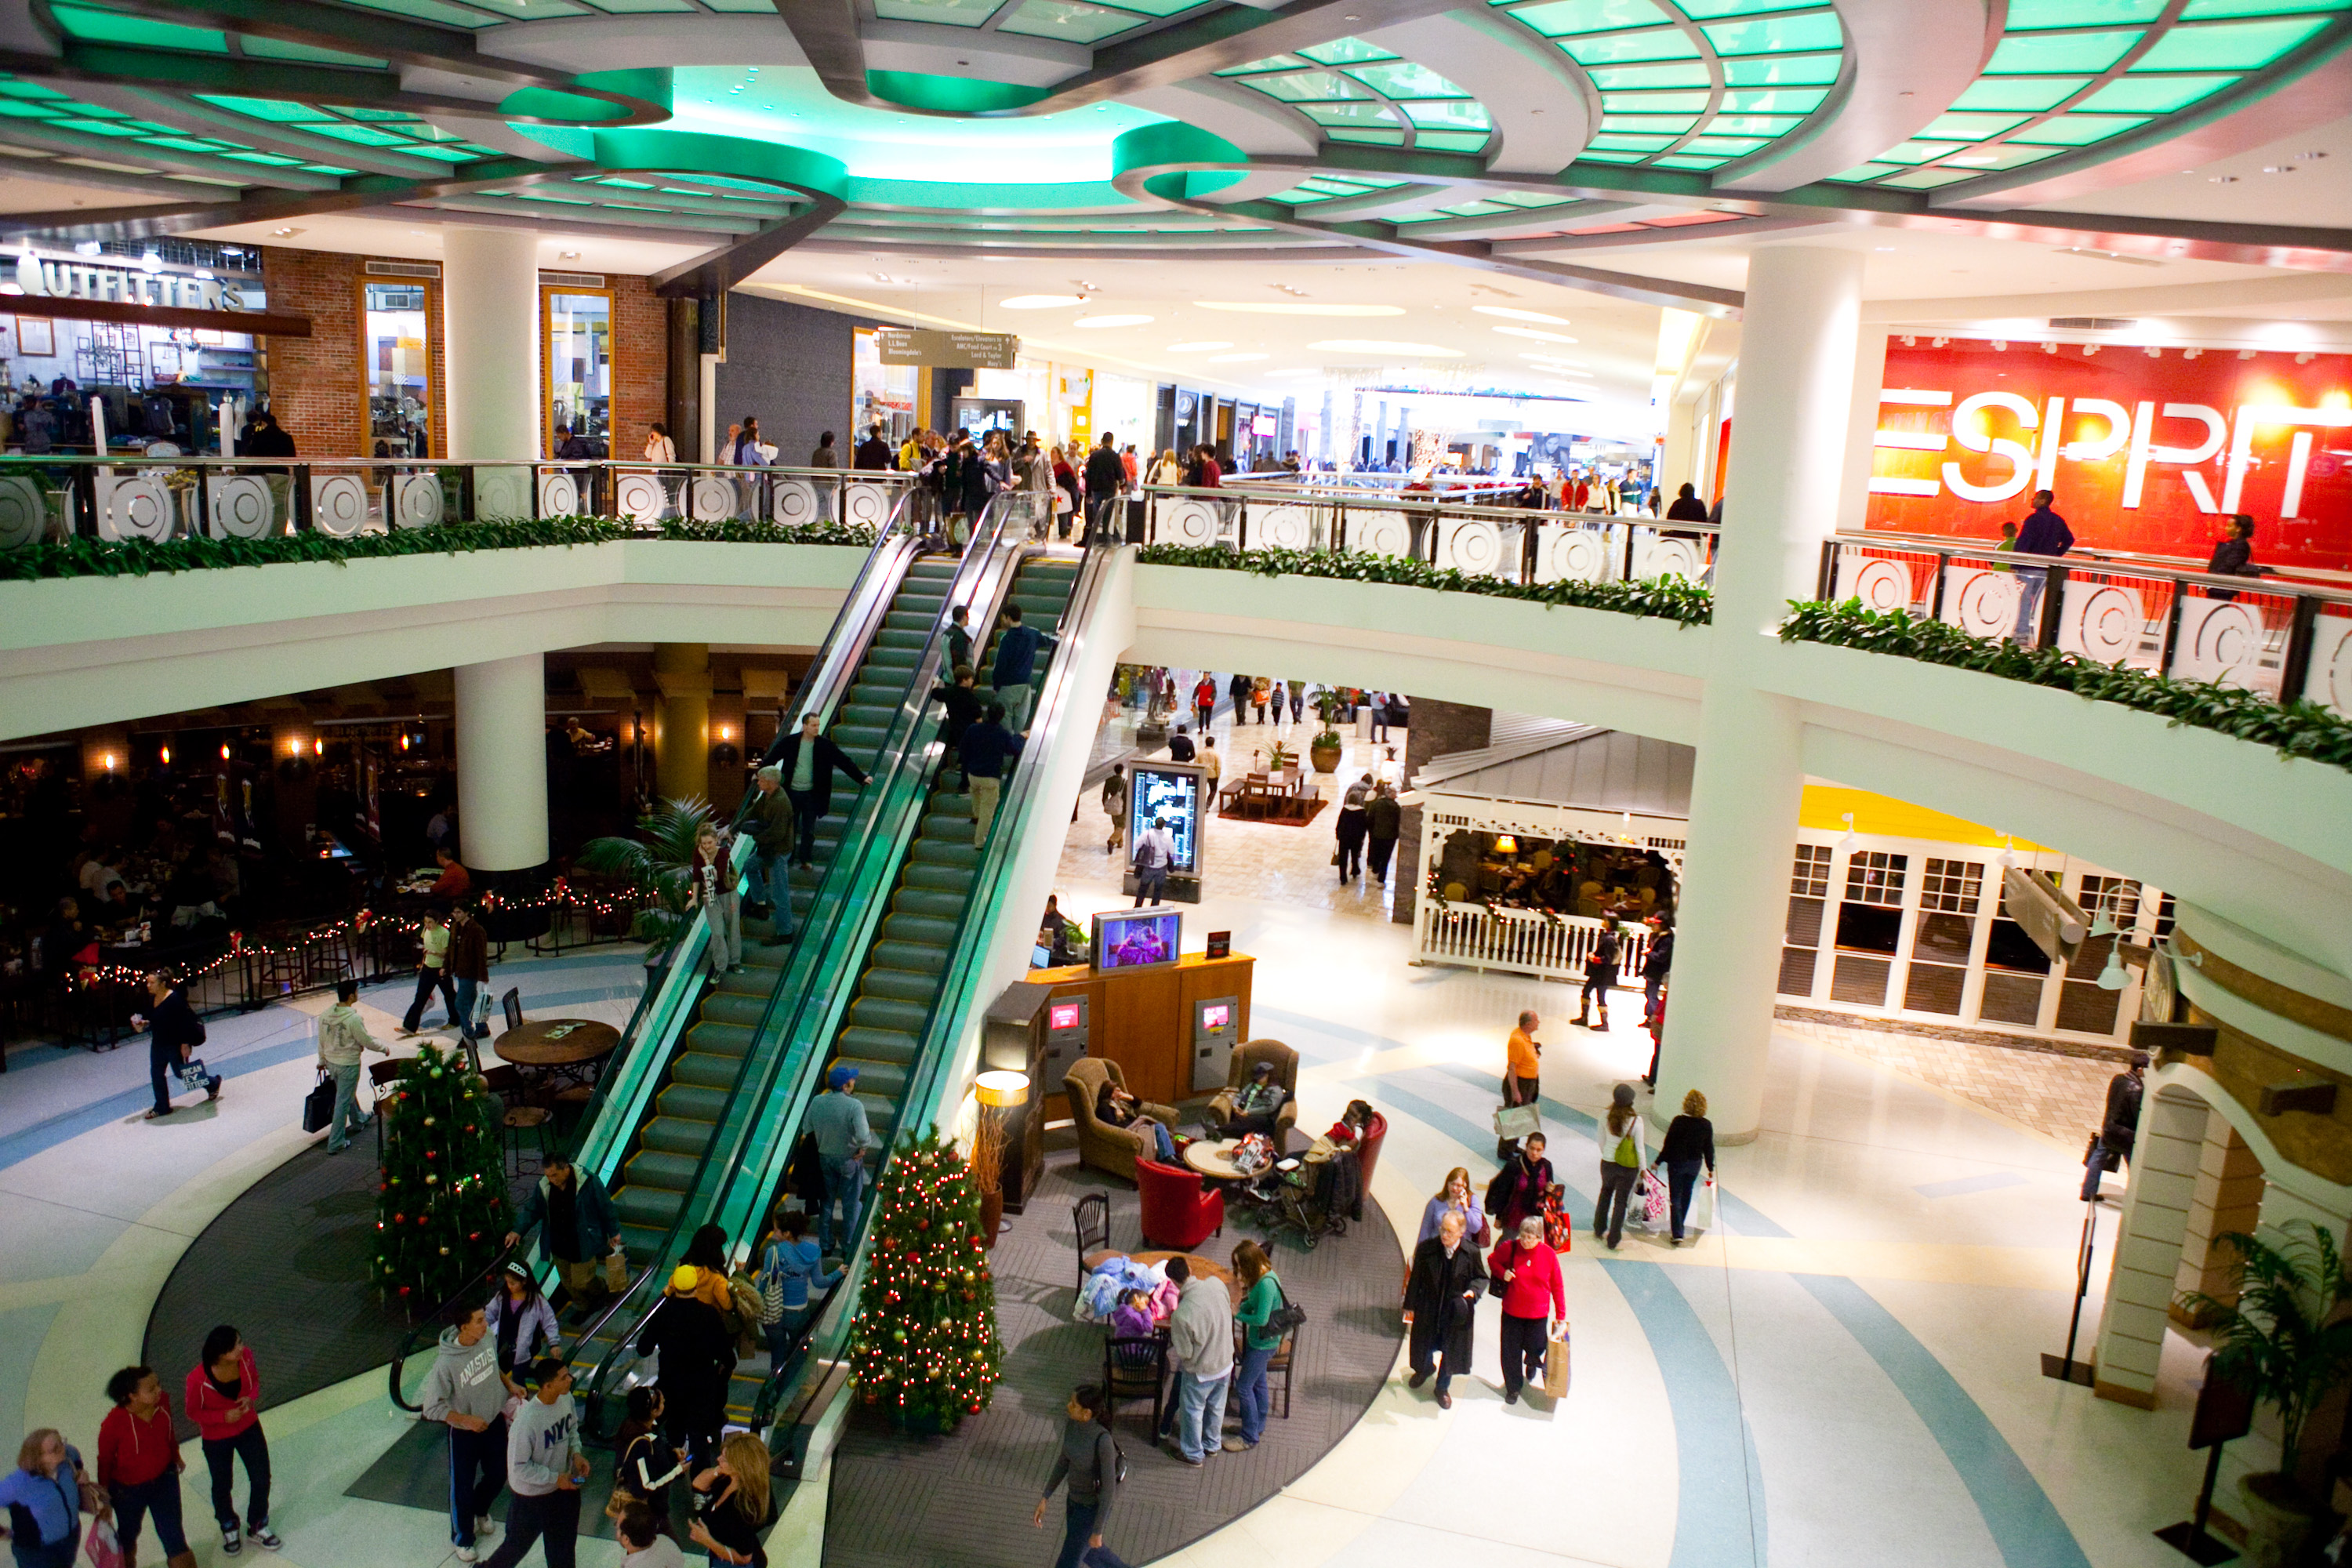 10 last minute shopping tips so navigating the mall on christmas eve wont be nearly as painful - What Time Does The Mall Close On Christmas Eve